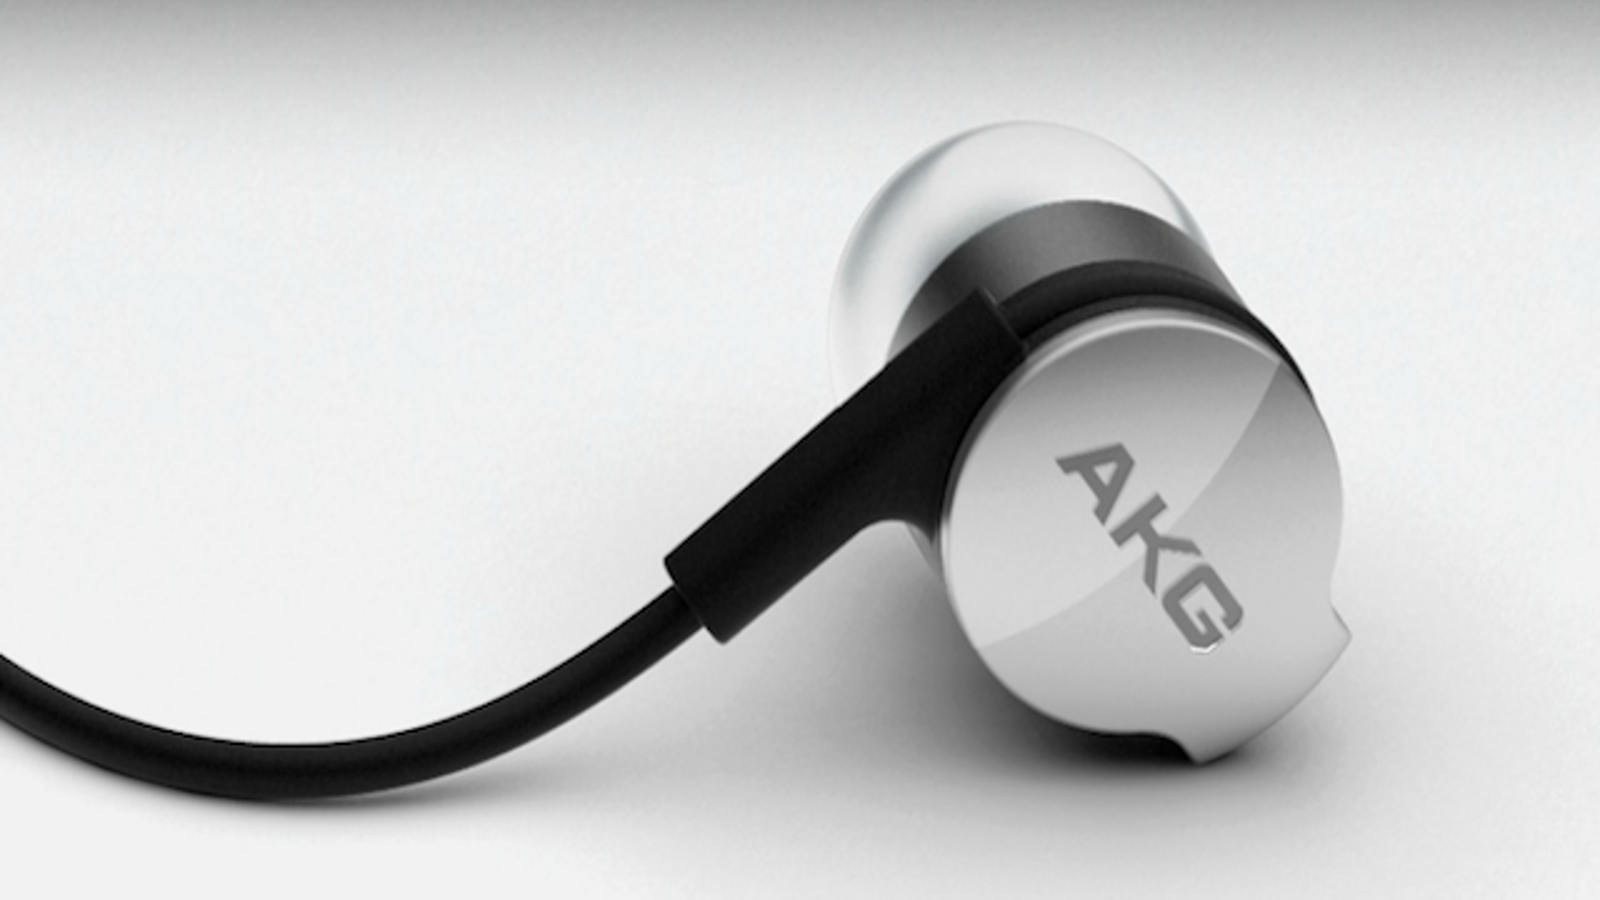 headphones wireless over ear kids - The AKG K3003s Are Easy on the Eyes, but Nary a Soul Will Buy